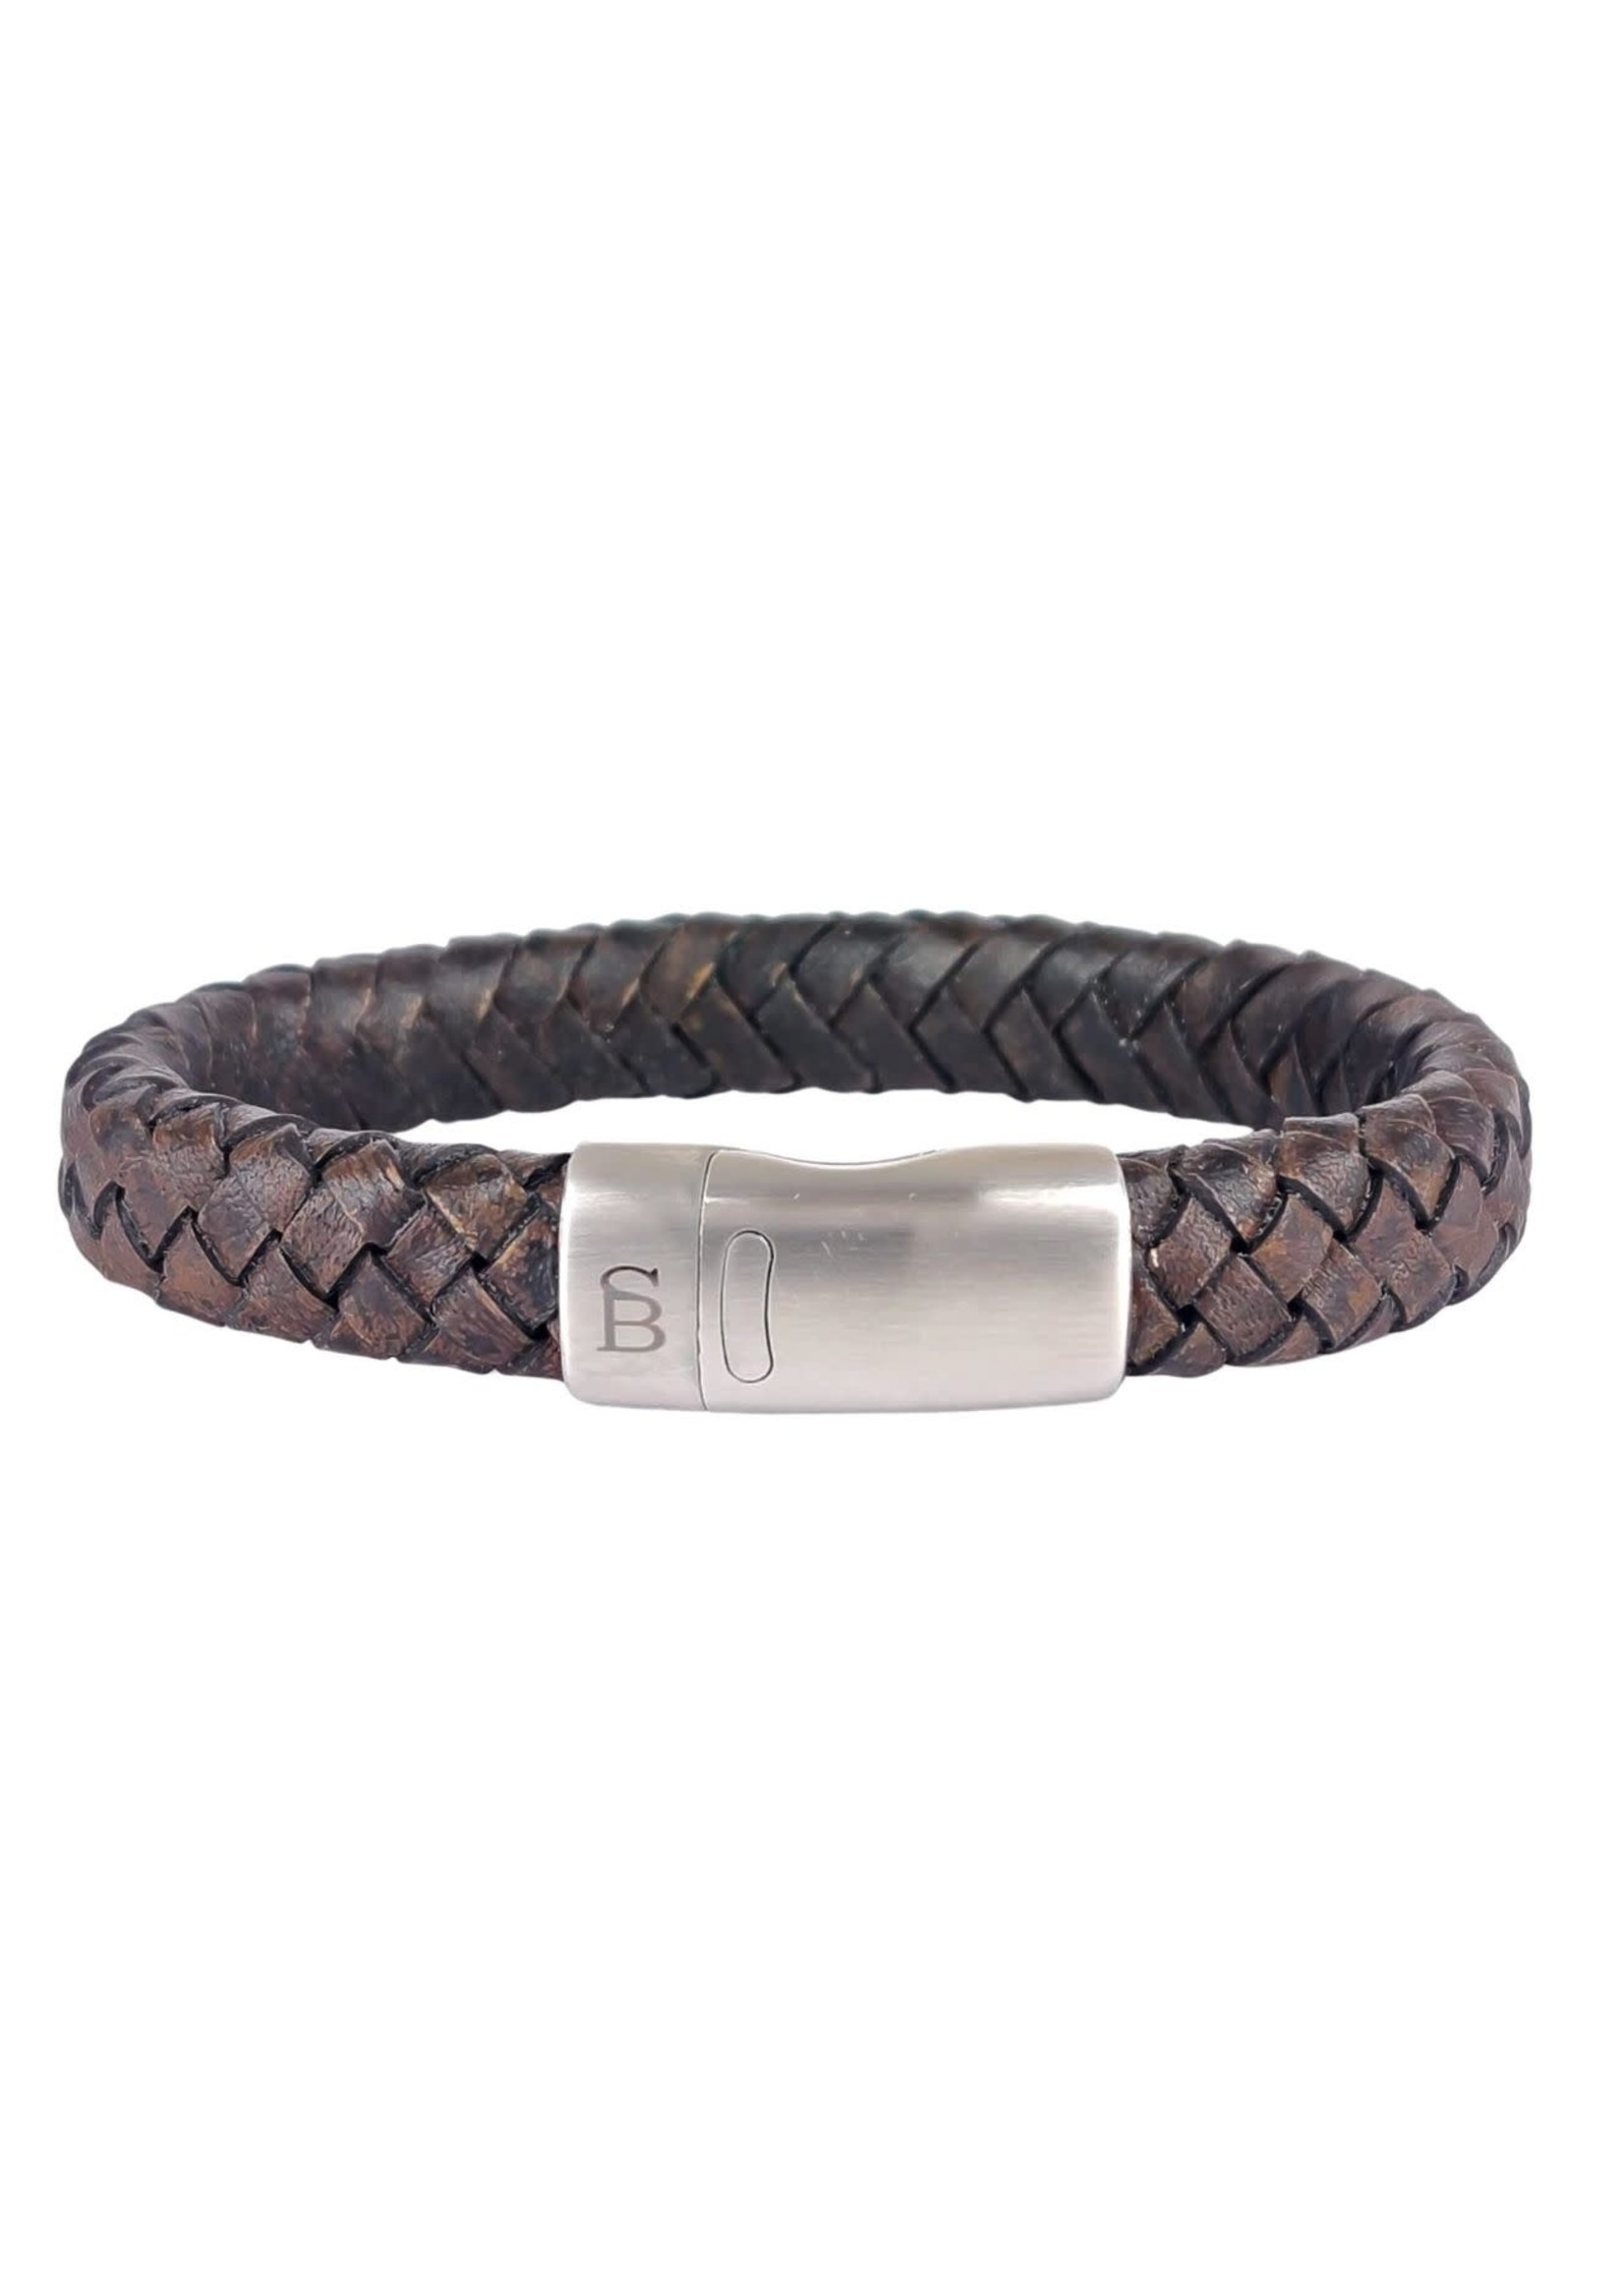 Steel & Barnett Leather Bracelet Cornall | Vintage Black | Steel&Barnett